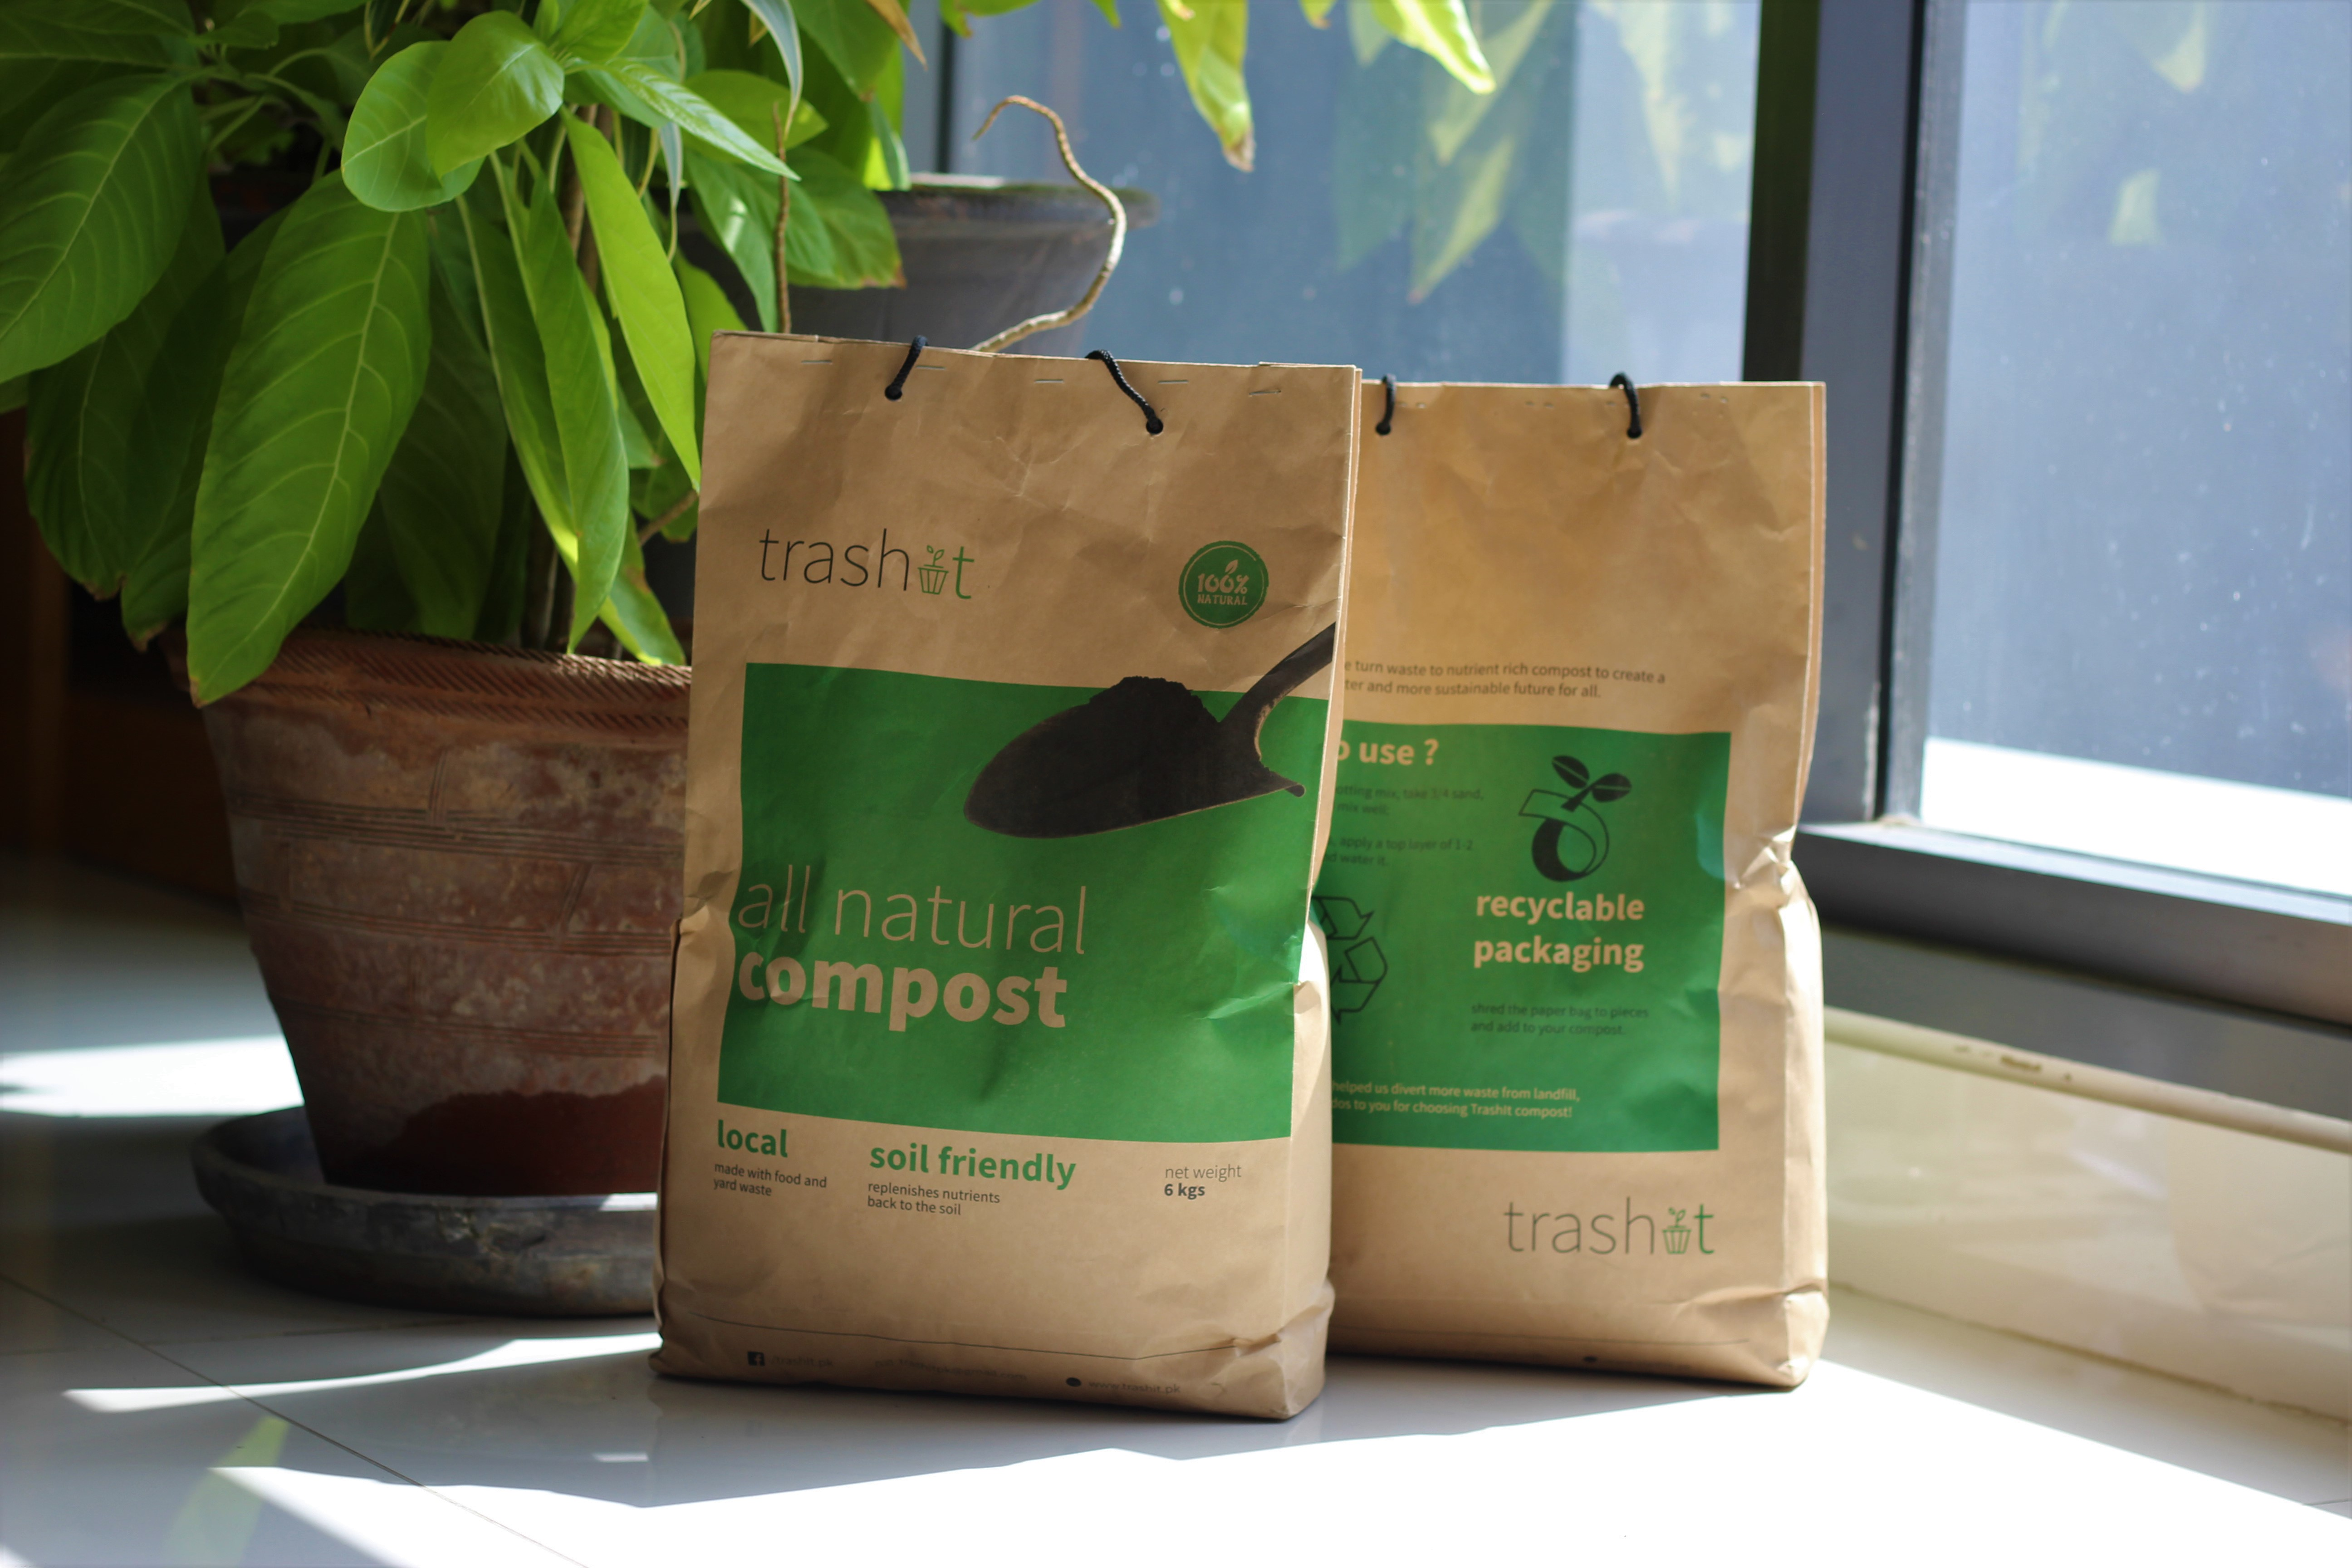 All Natural Nutrient Rich Compost         (6 Kg)